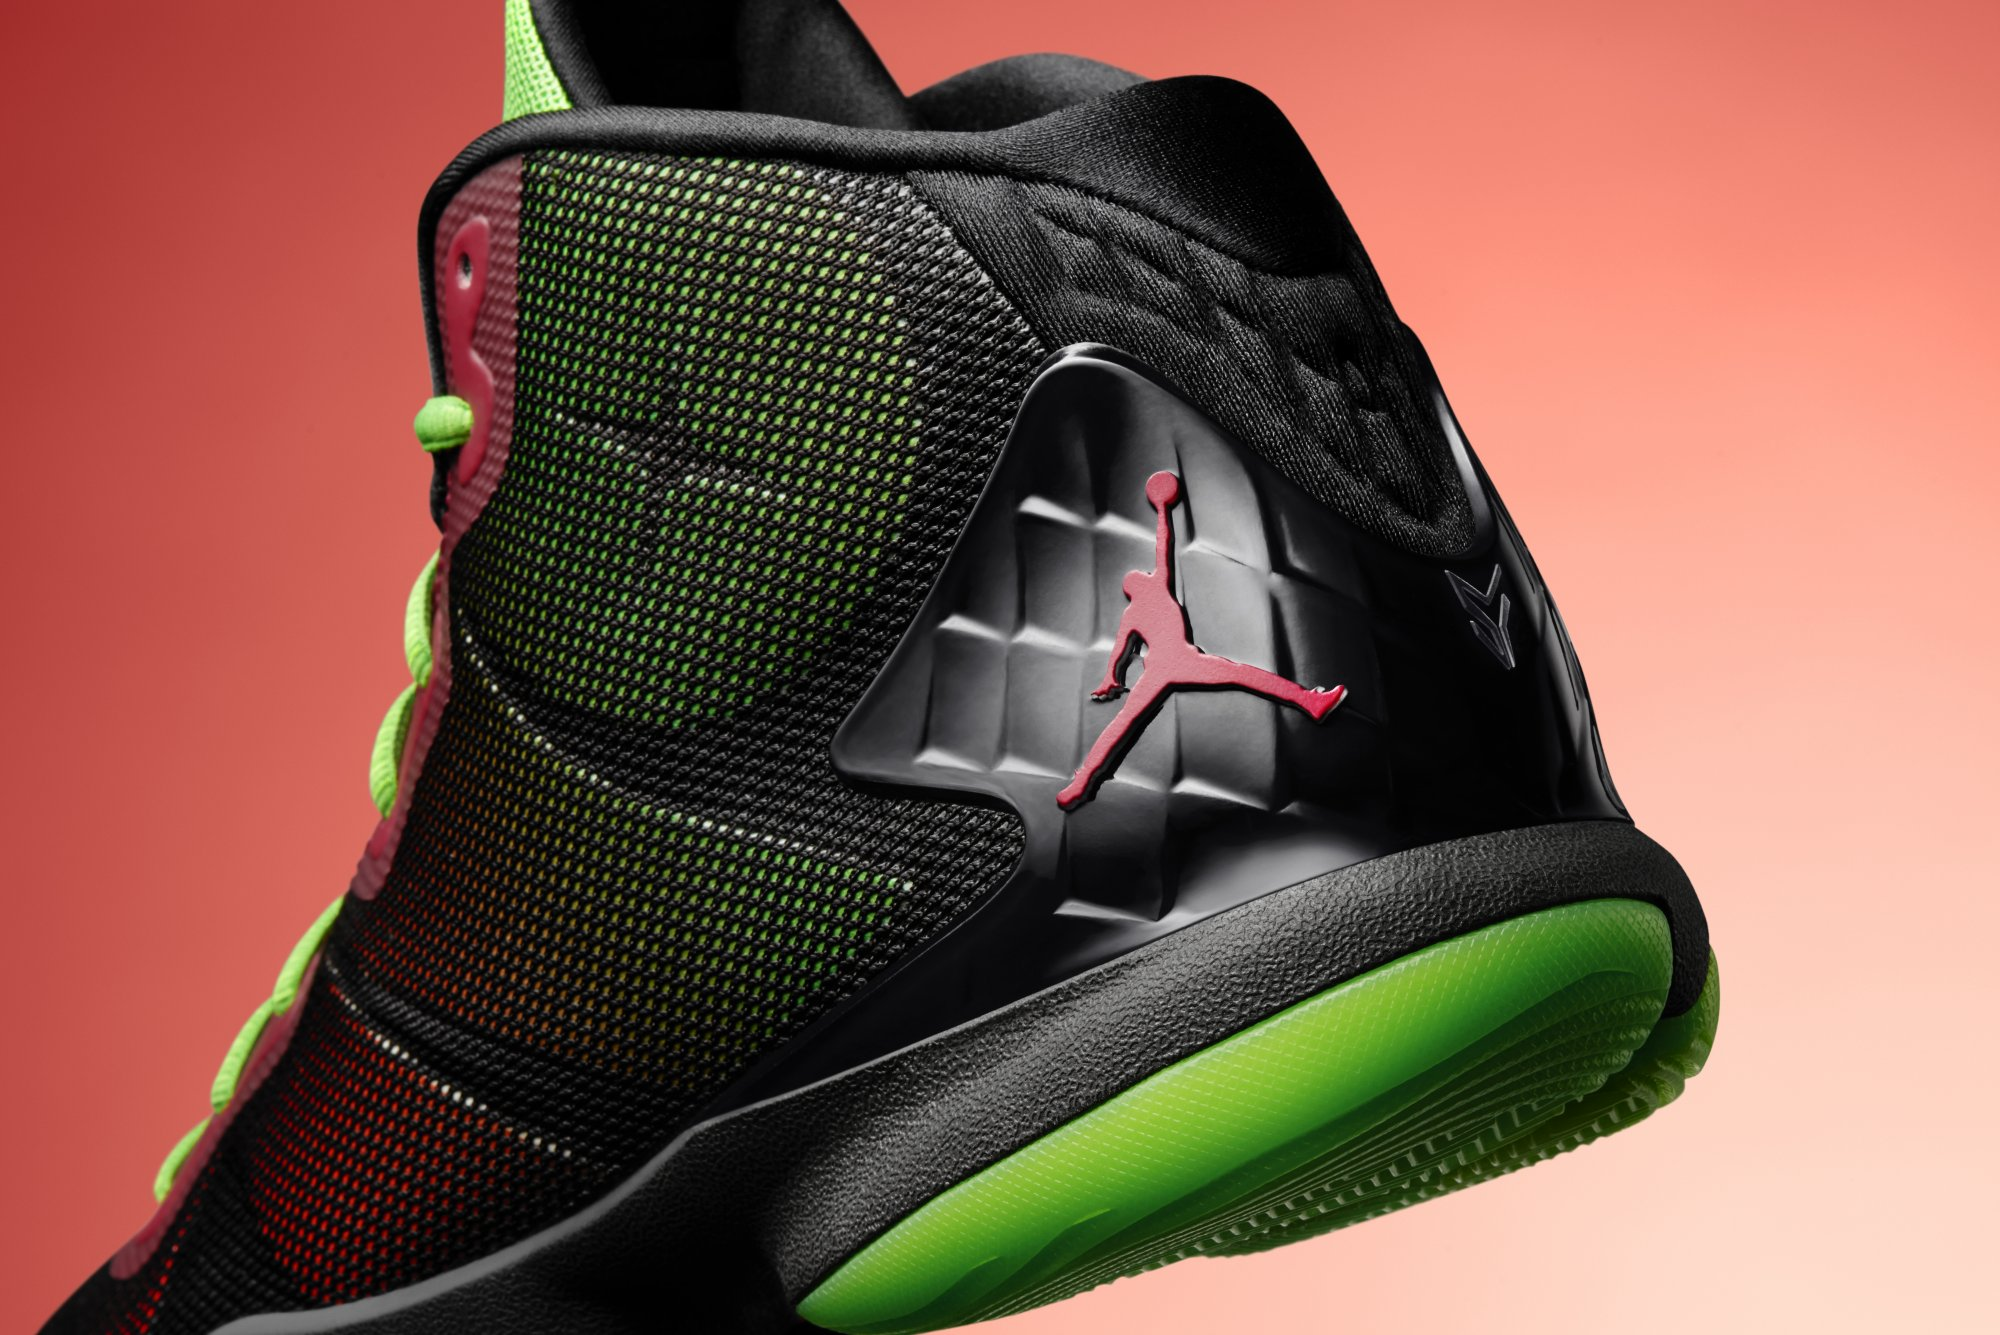 97a35bdaa1281 marvin the martian Archives - Air 23 - Air Jordan Release Dates ...